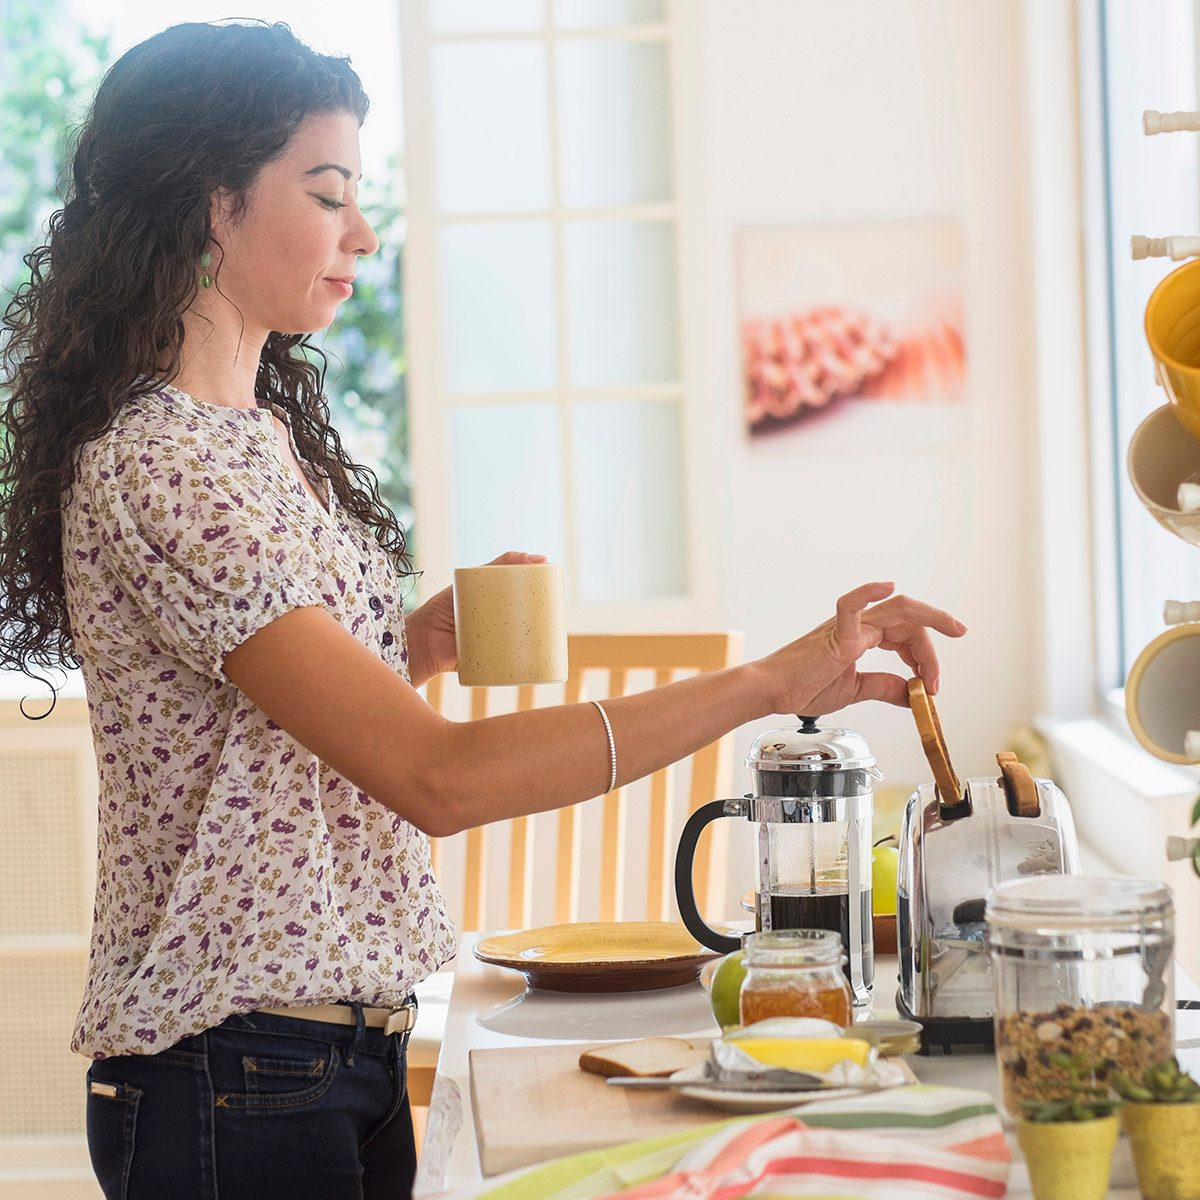 Mixed race woman preparing breakfast in kitchen